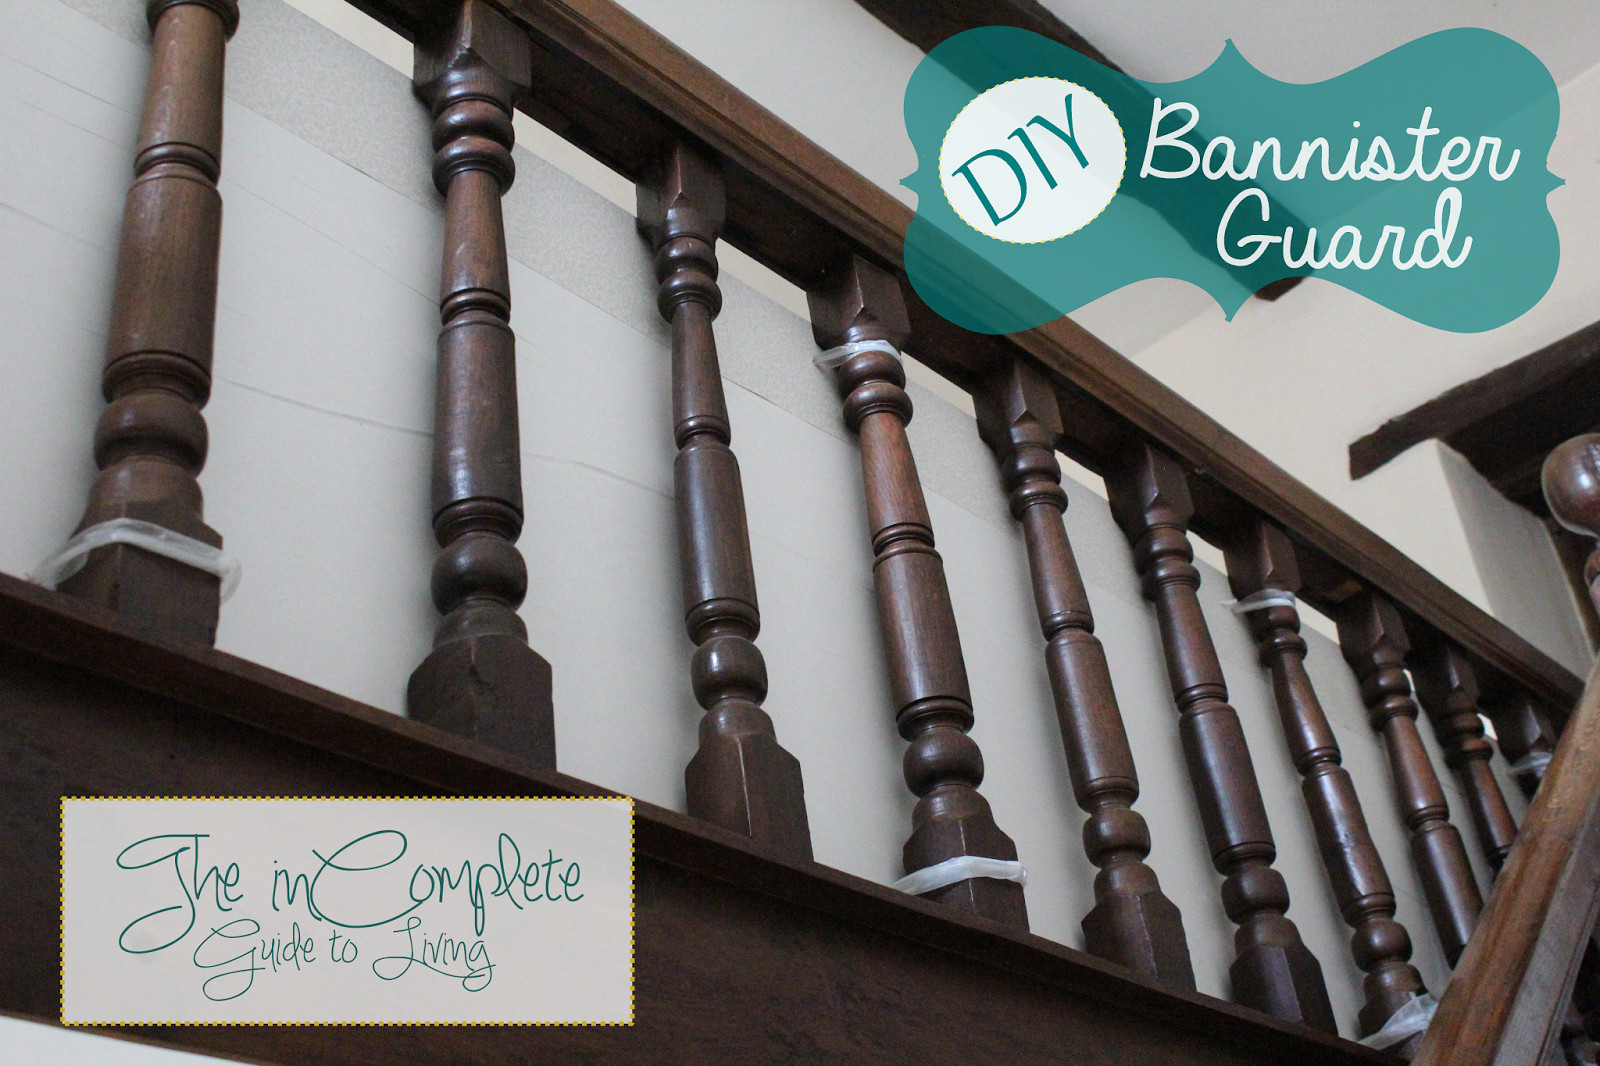 Best ideas about DIY Baby Proofing . Save or Pin In plete Guide to Living DIY Babyproofing Bannister Now.